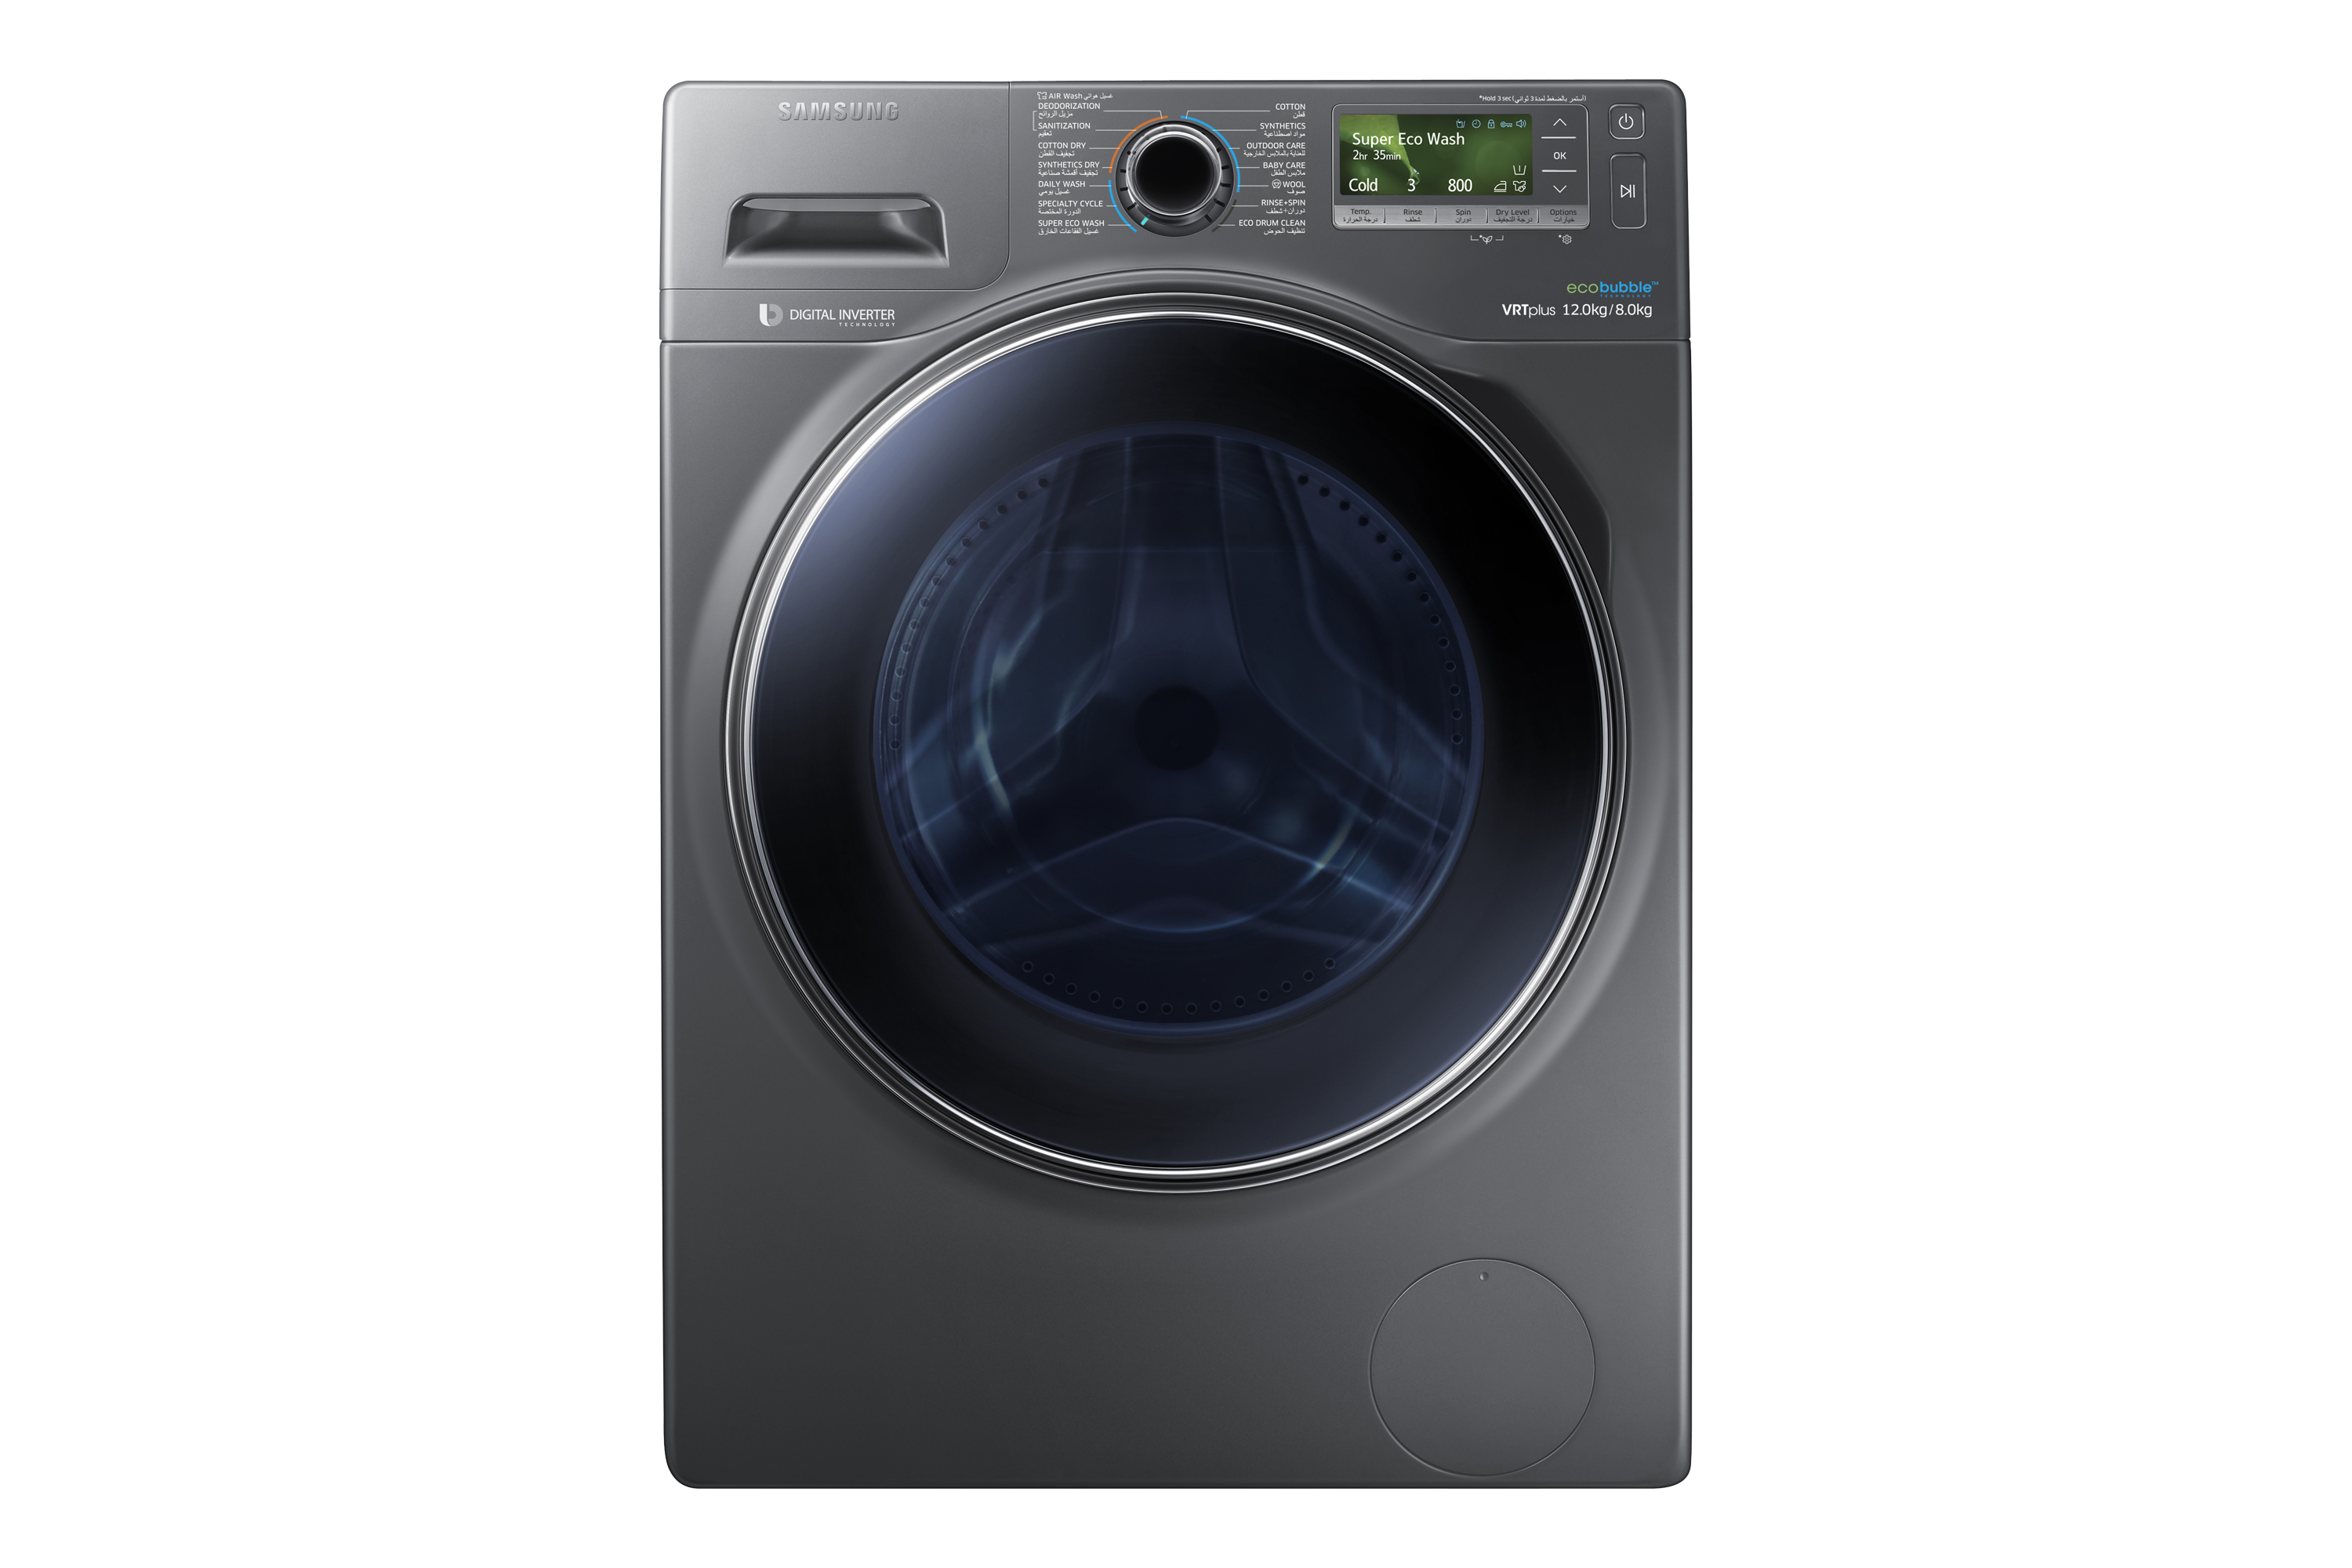 WD12J8420GX Combo (Wash&Dry) with EcoBubble™, 12 Kg